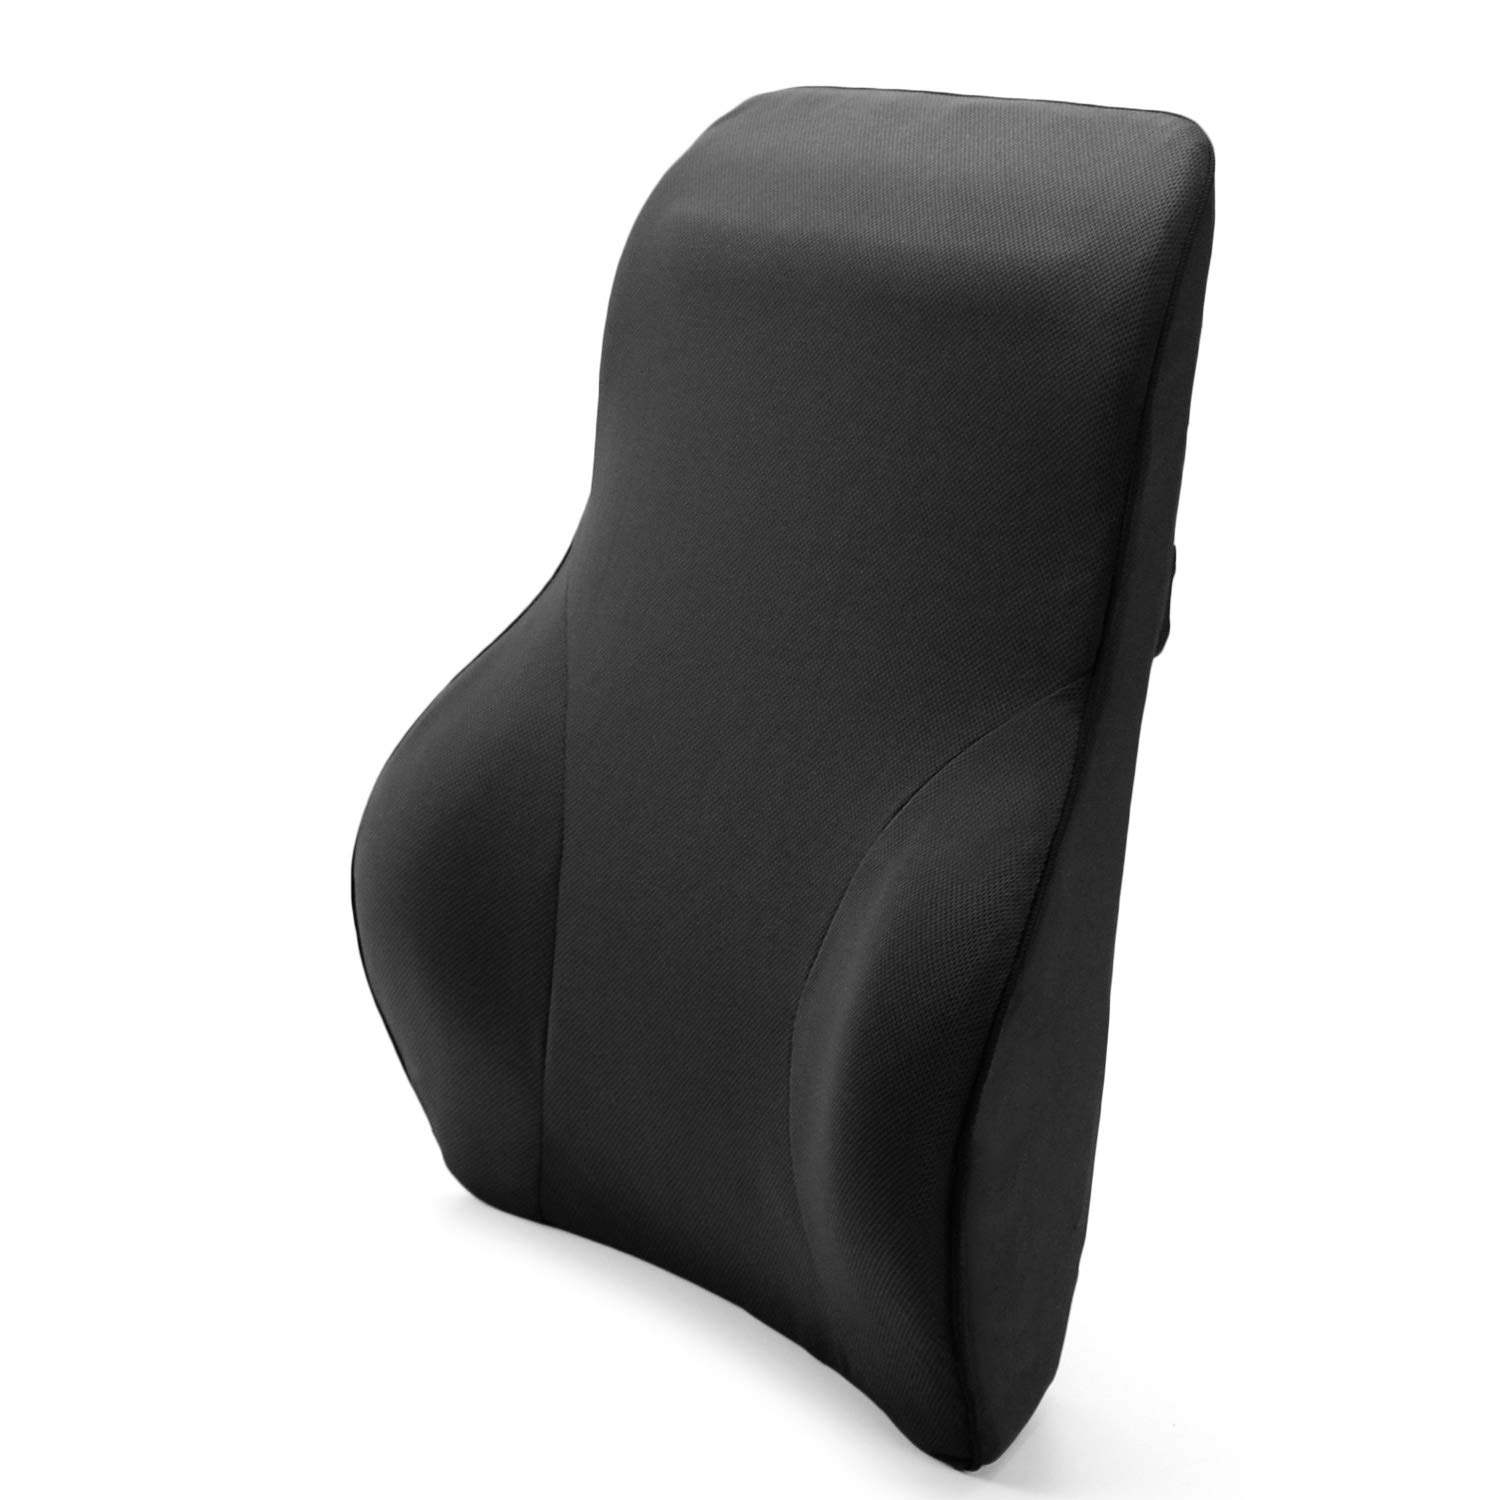 Tektrum Full Lumbar Entire Back Support Cushion for Home/Office Chair, Car Seat - Washable Cover, Ergonomic Thick 3D Design Fit Body Curve - Back Pain Relief, Improve Posture - Black (TD-QFC024-BLK) Tektrum Development Corp.